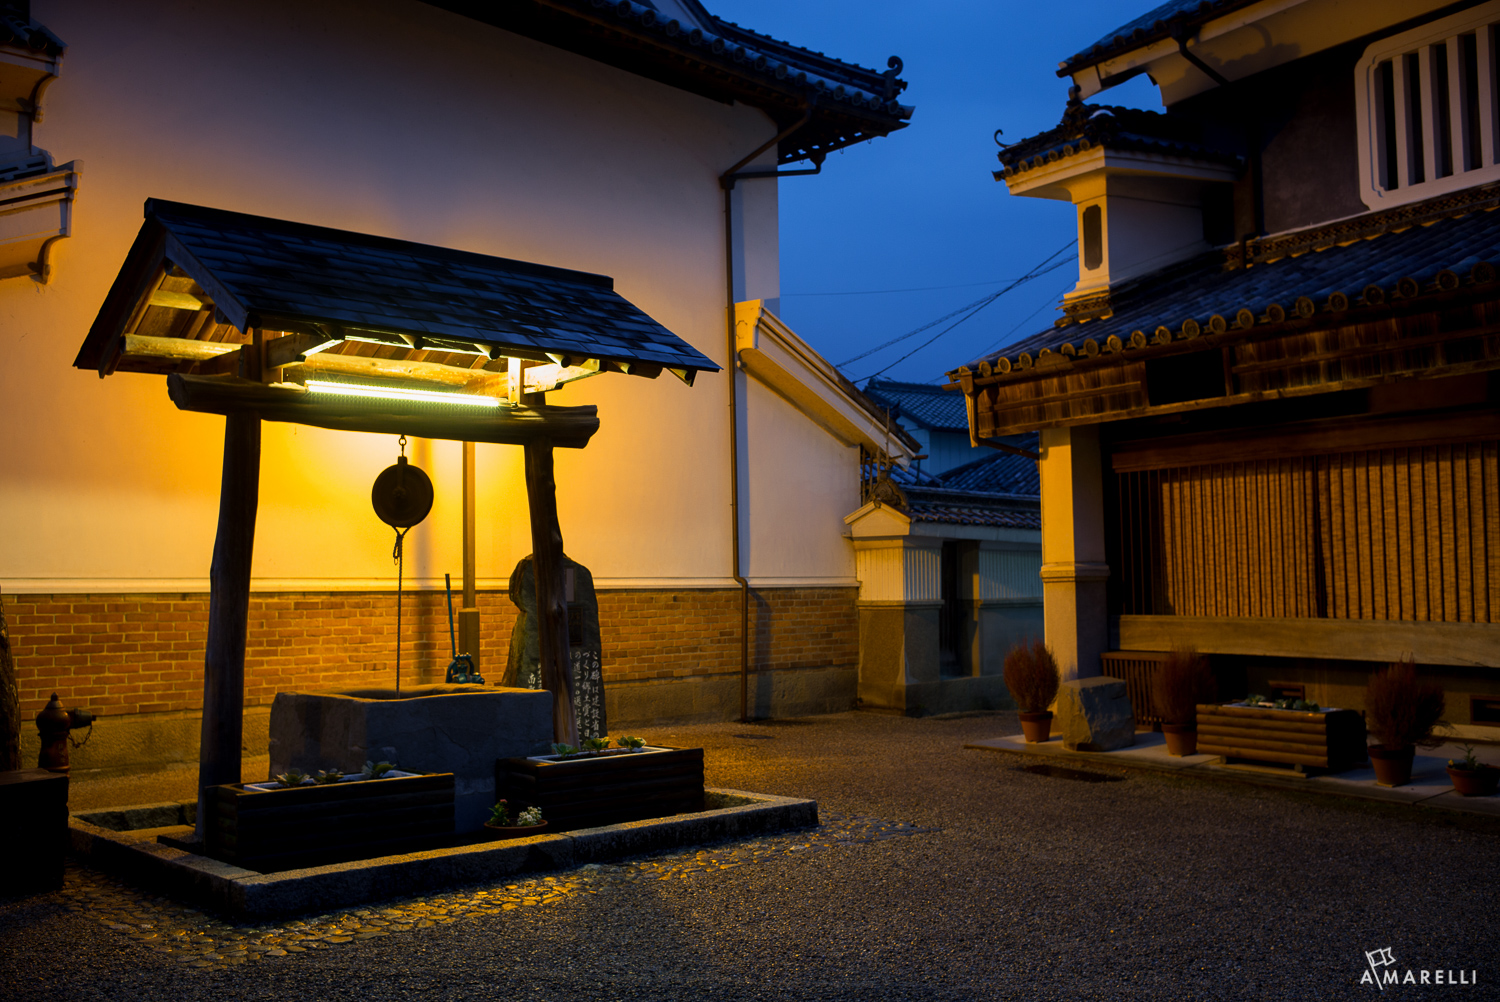 8-old-streets-of-udatsu-japan-by-adam-marelli